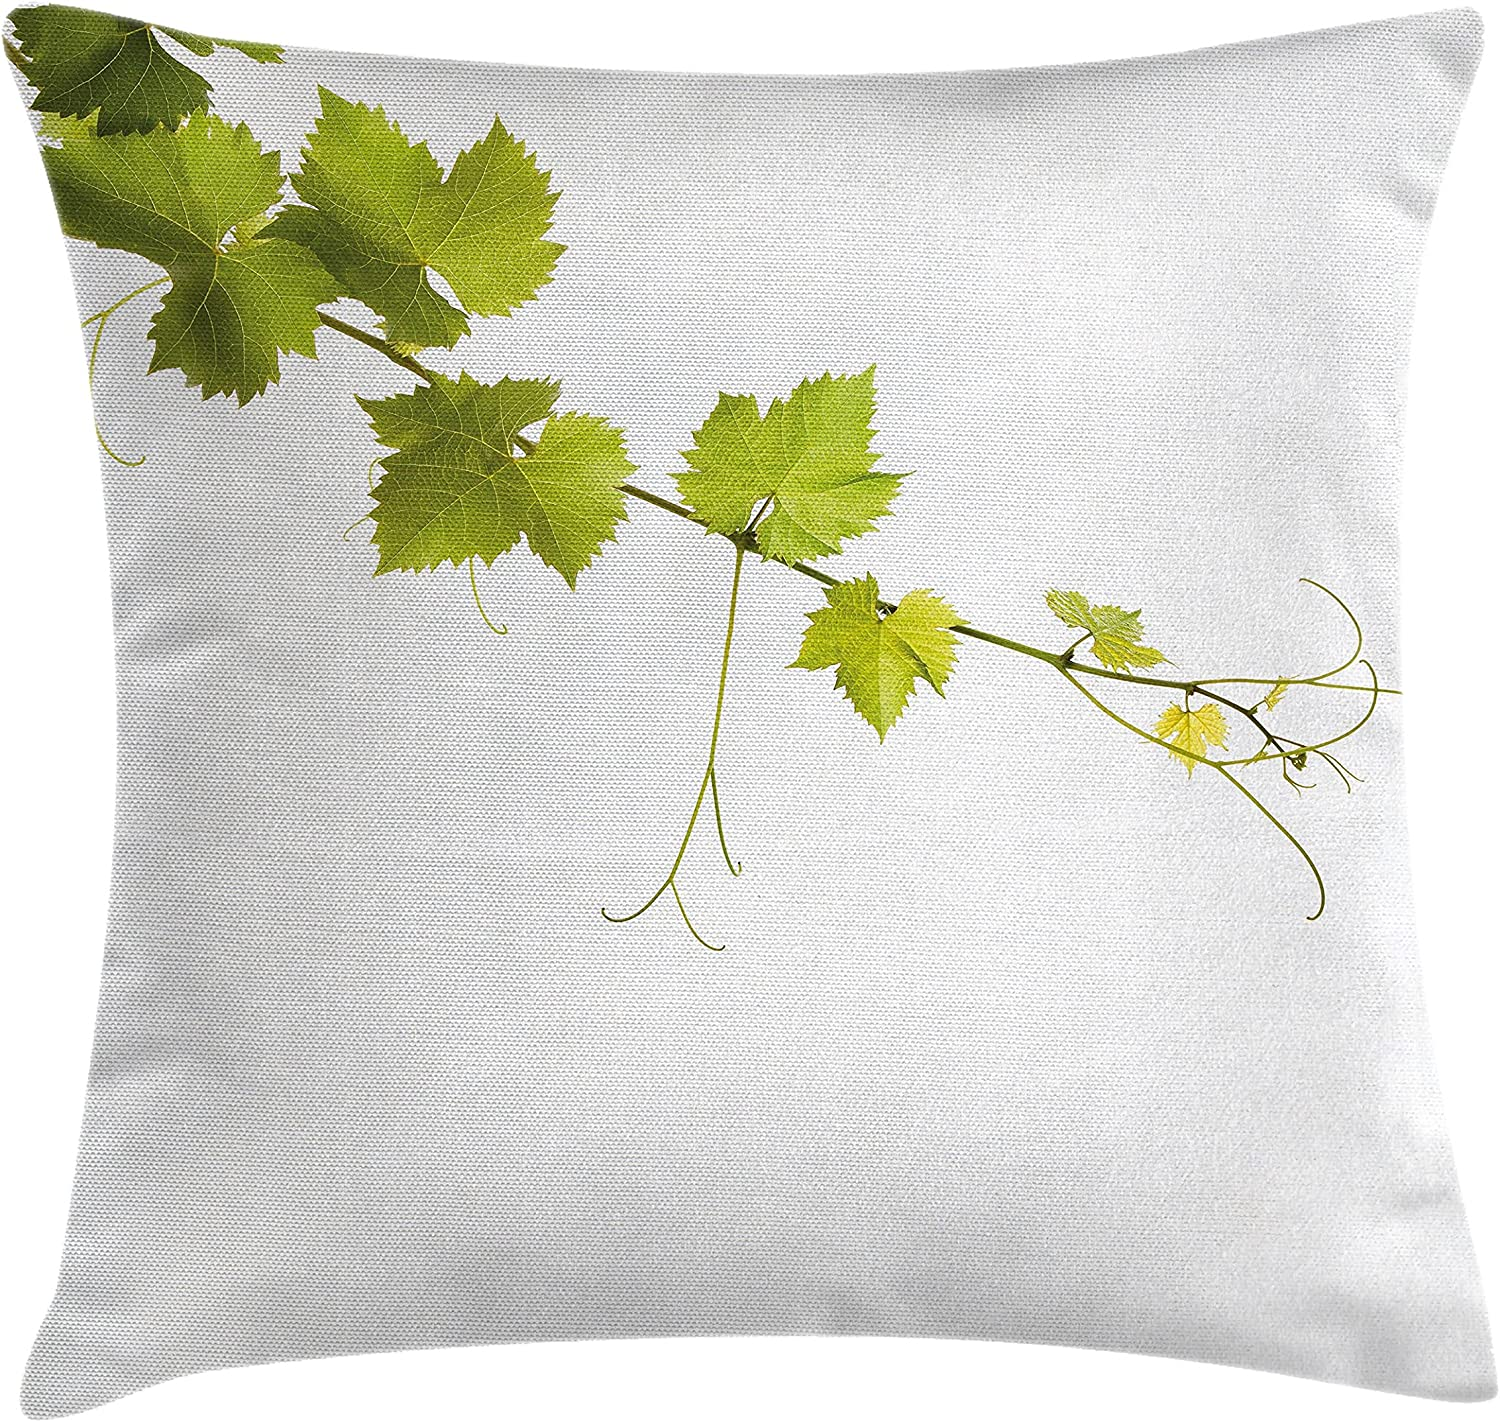 Lunarable Vineyard Throw Pillow Cushion Cover Vine Leaves On The Branch Agriculture Outdoor Vignette Mediterranean Nature Eco Food Decorative Square Accent Pillow Case 40 X 40 Green Home Kitchen